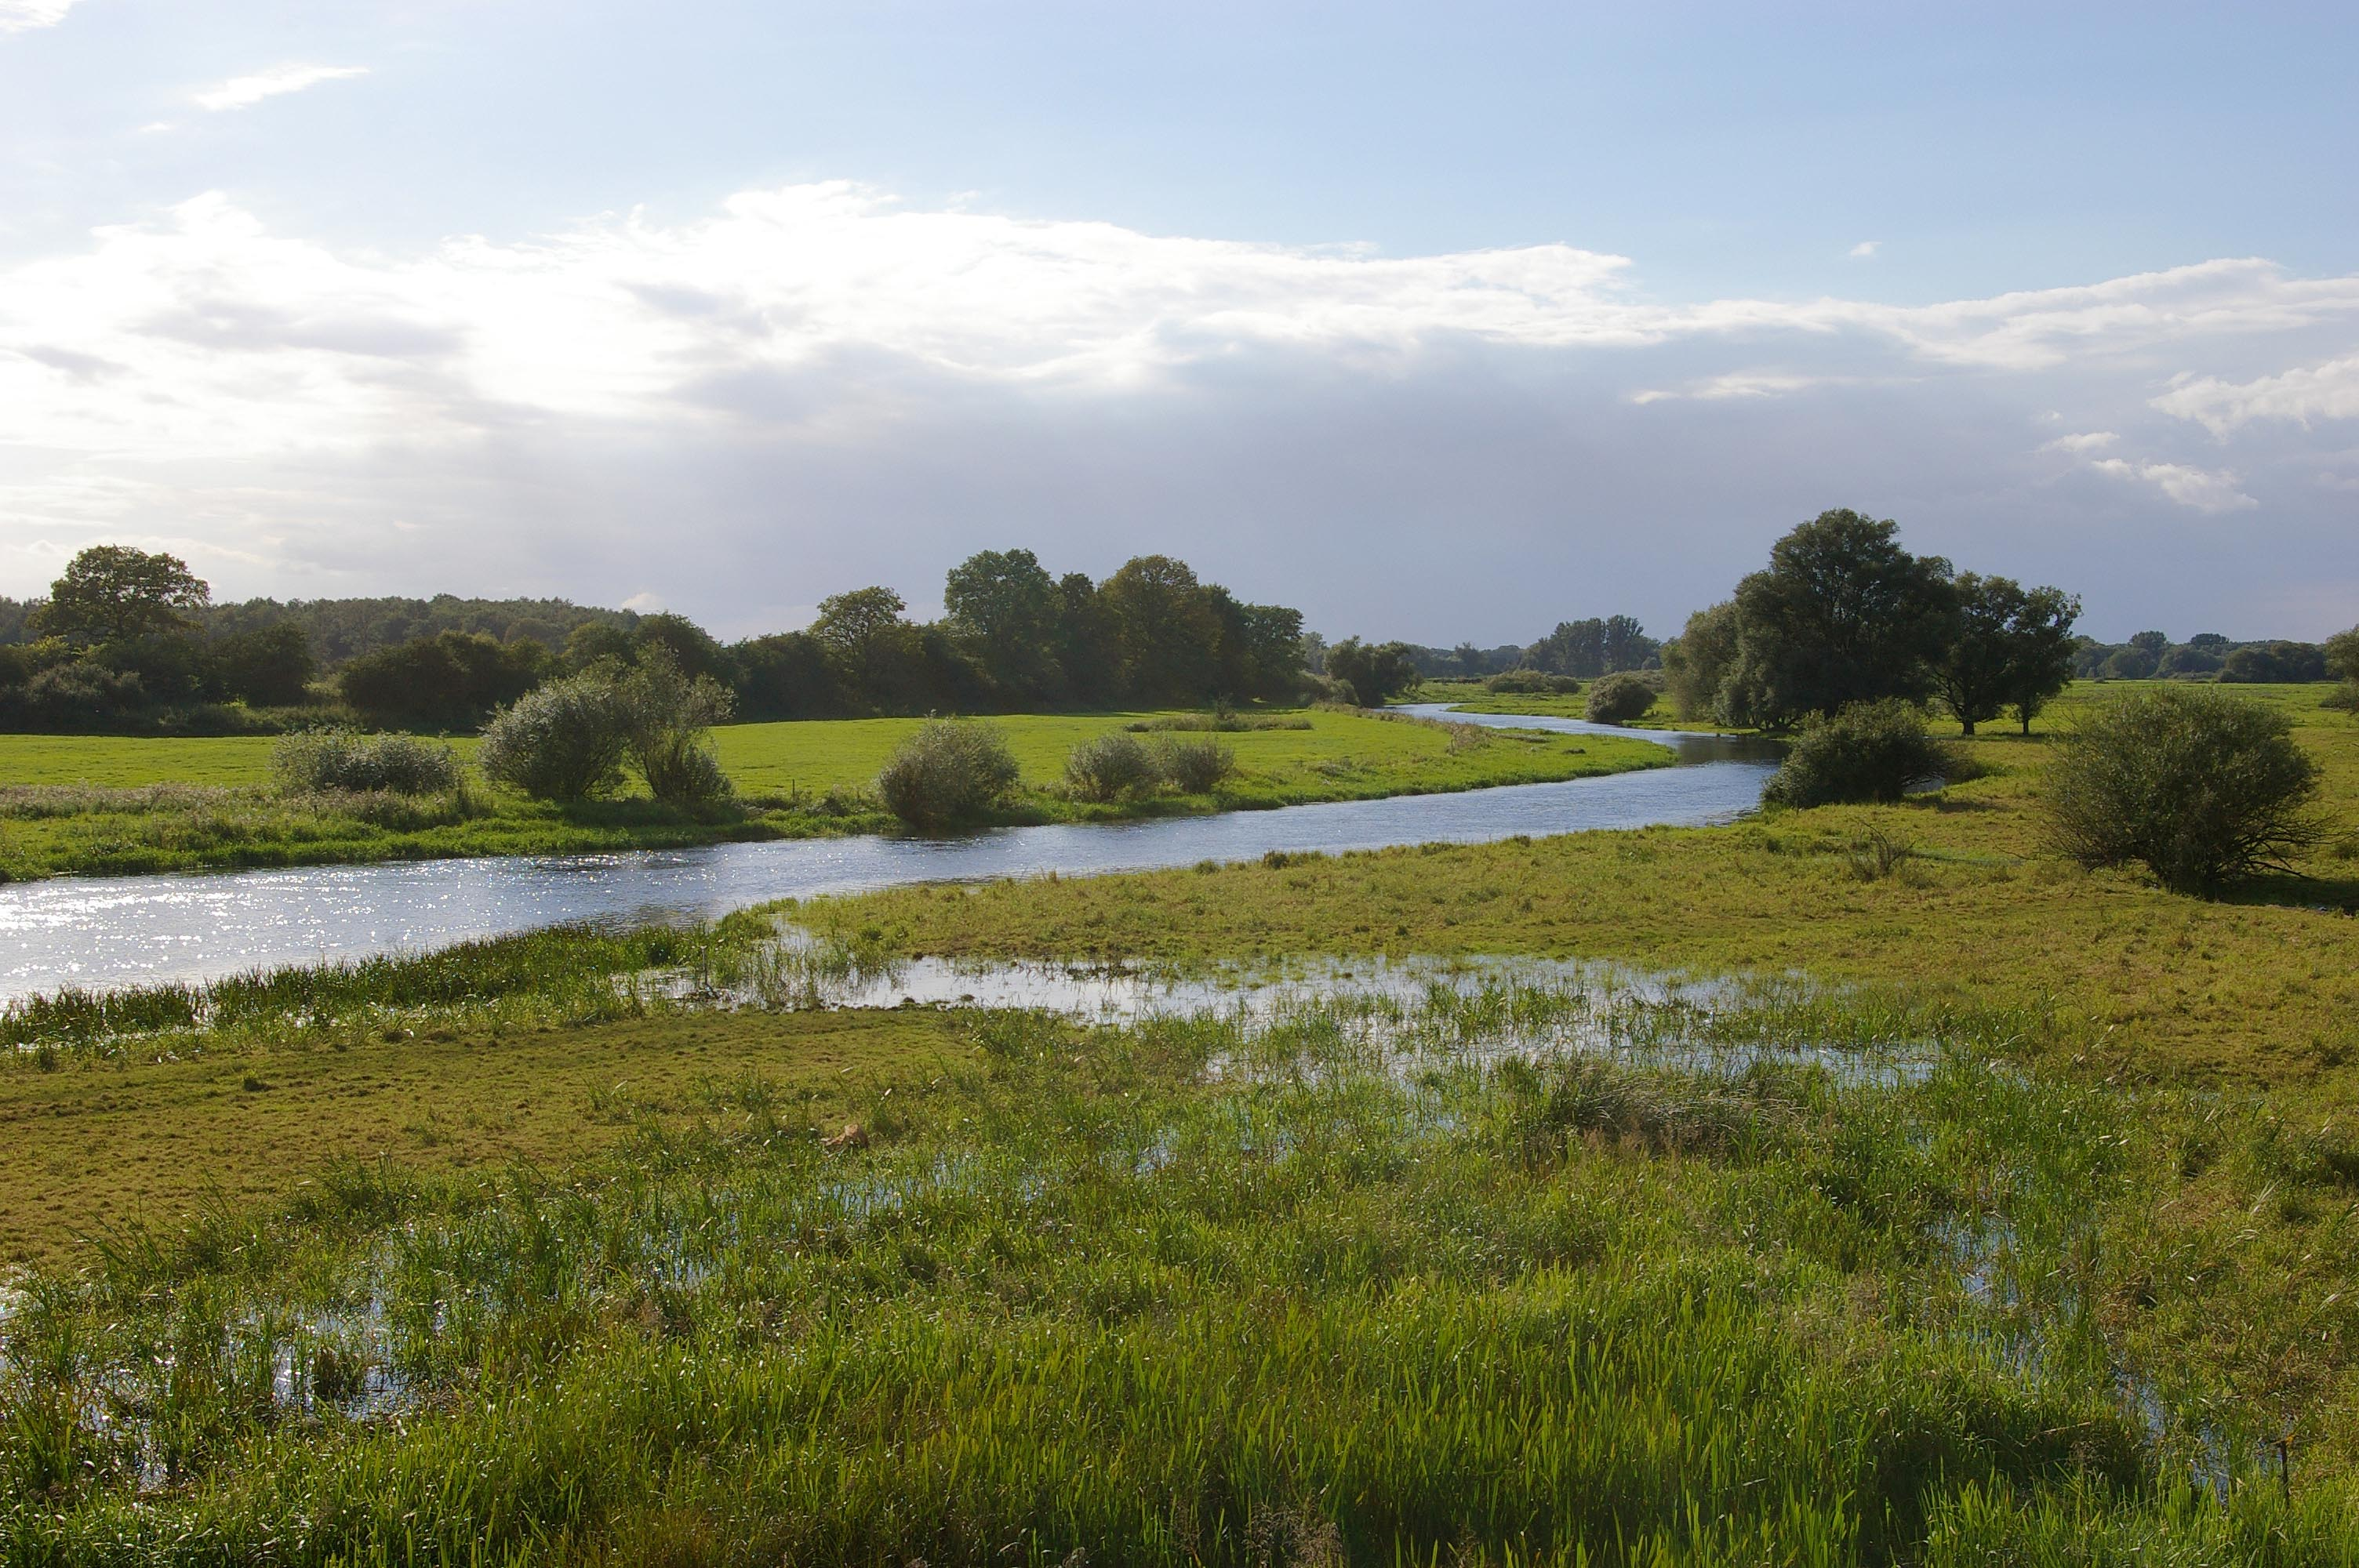 File:AlandFloodplain.jpg - Wikimedia Commons